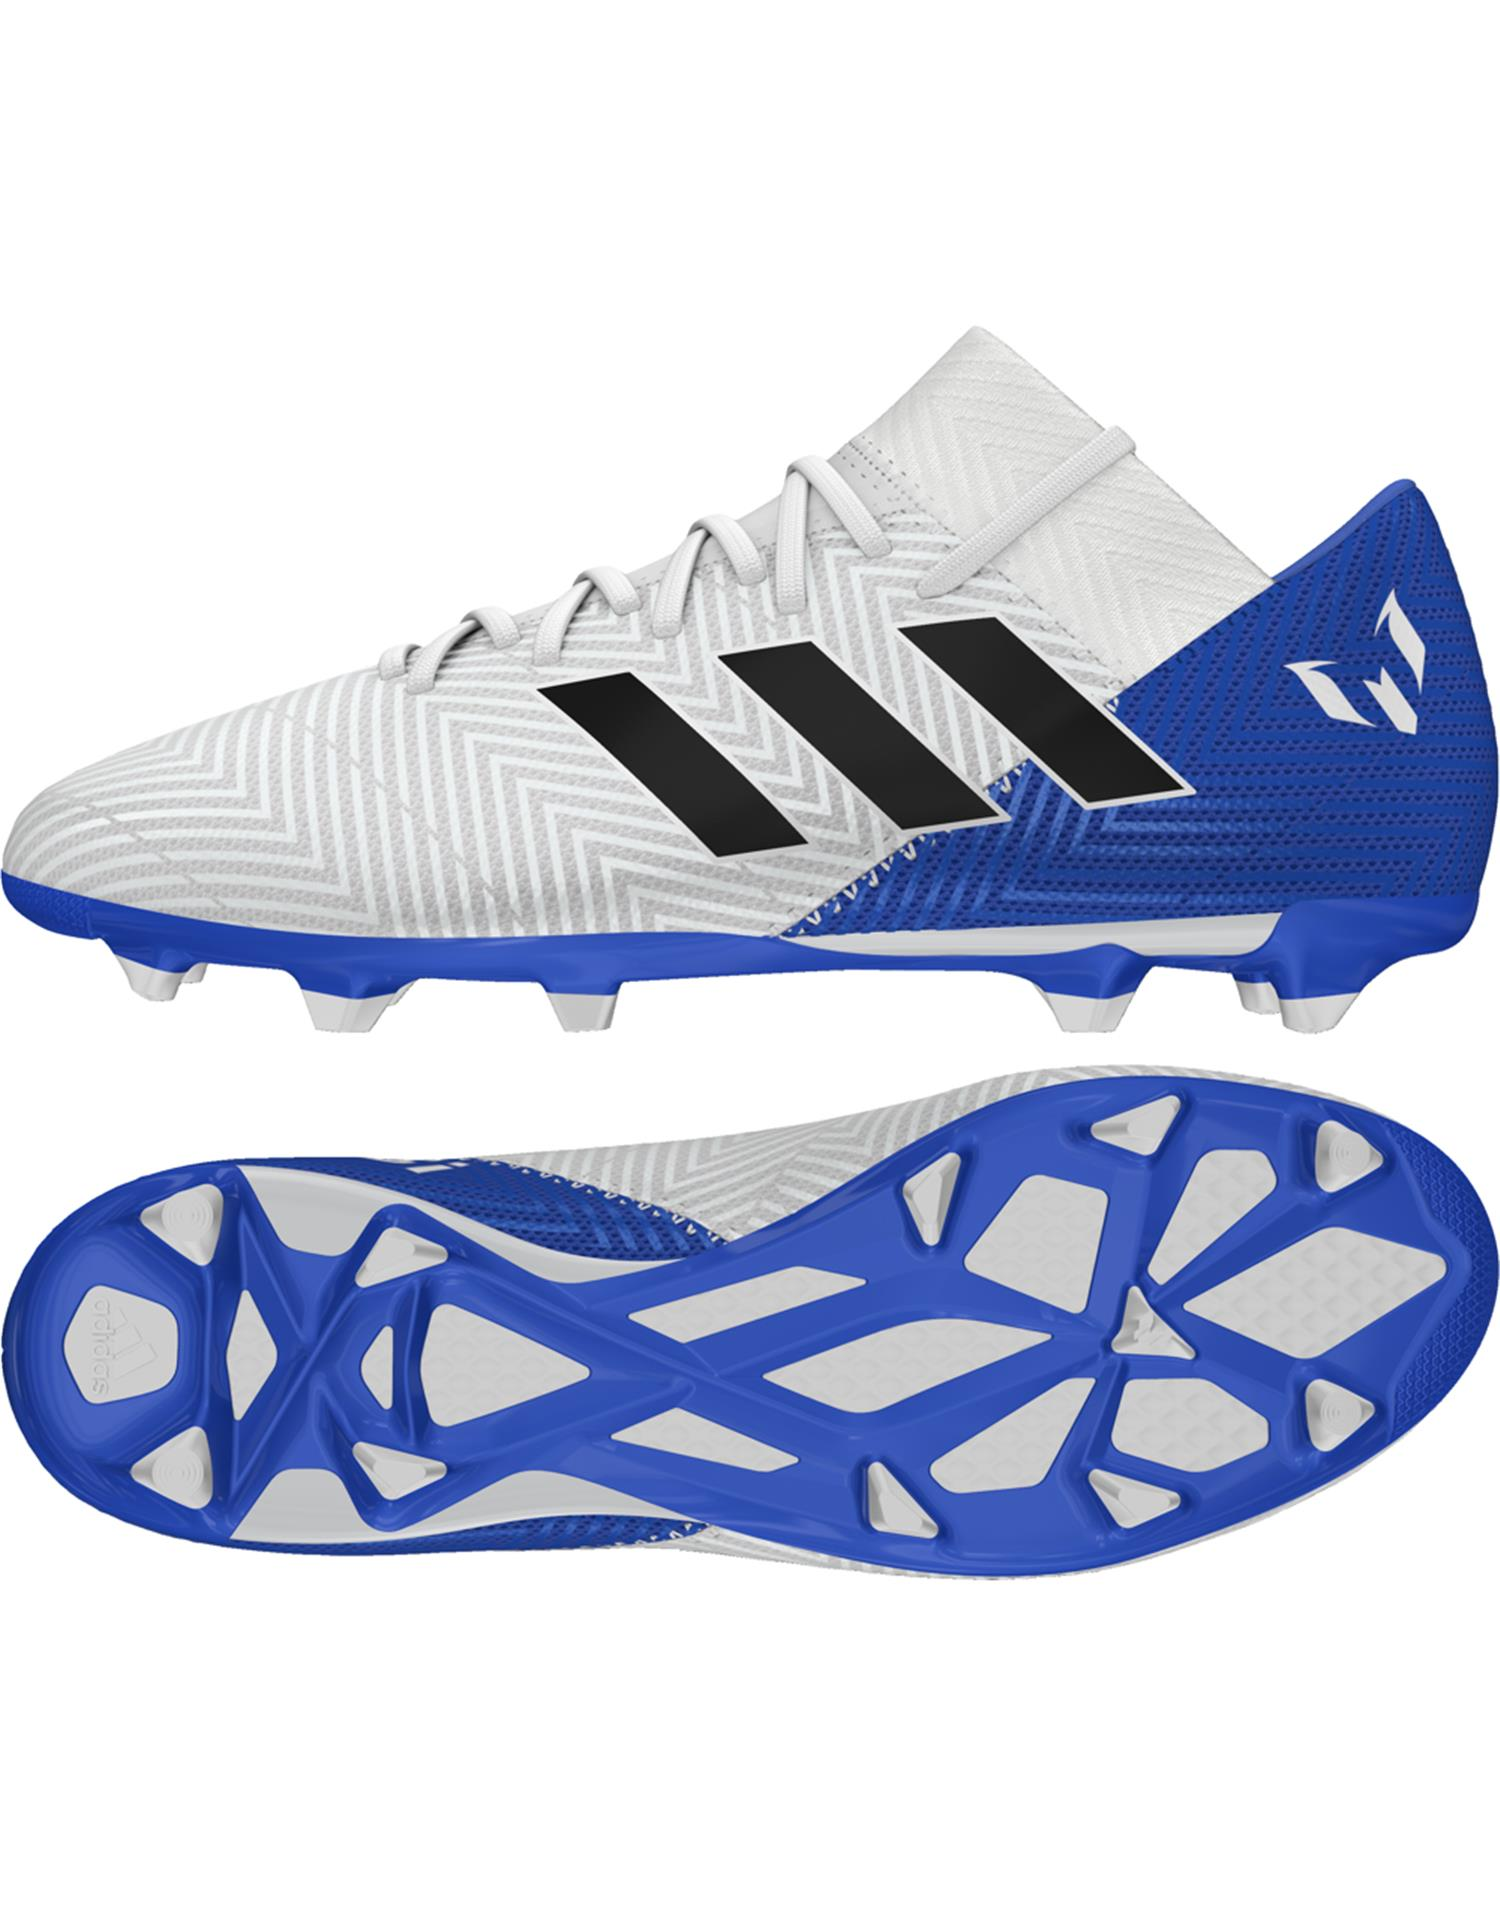 ADIDAS Scarpe da calcio Nemeziz Messi 18.3 Firm Ground (43-1/3 - BIANCO - ROYAL)